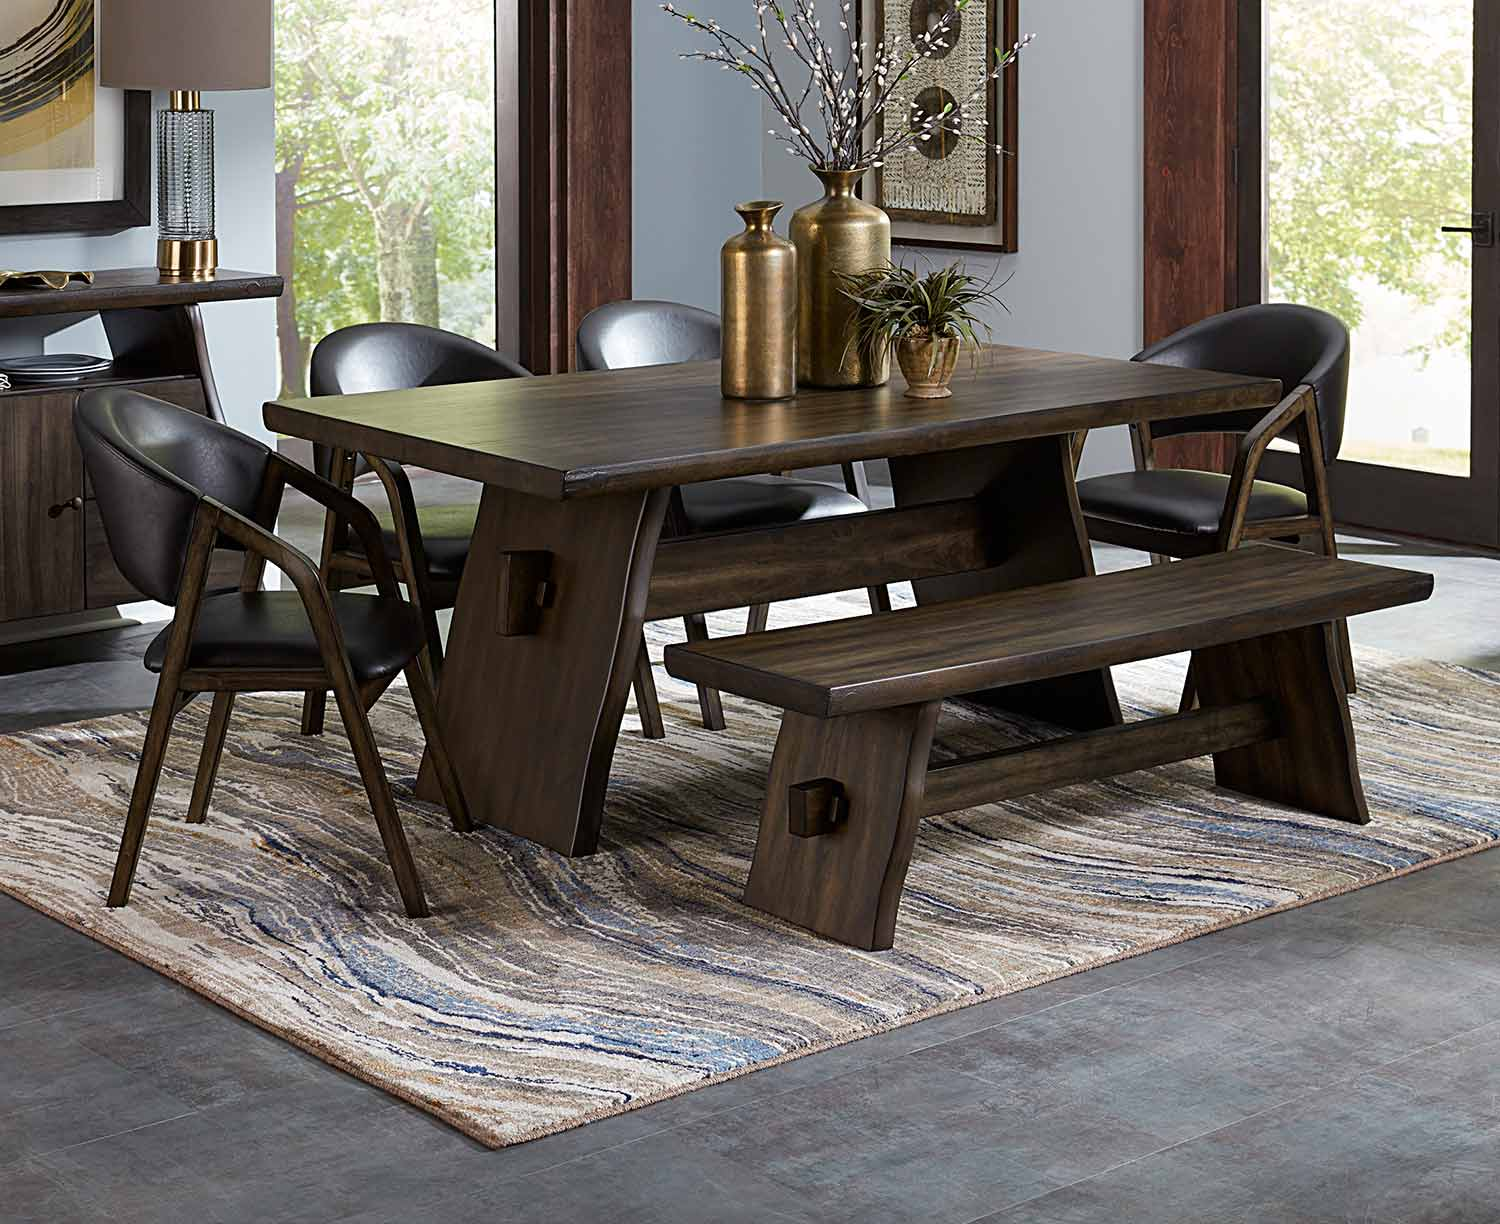 Homelegance Cabezon Dining Set - Rustic Brown